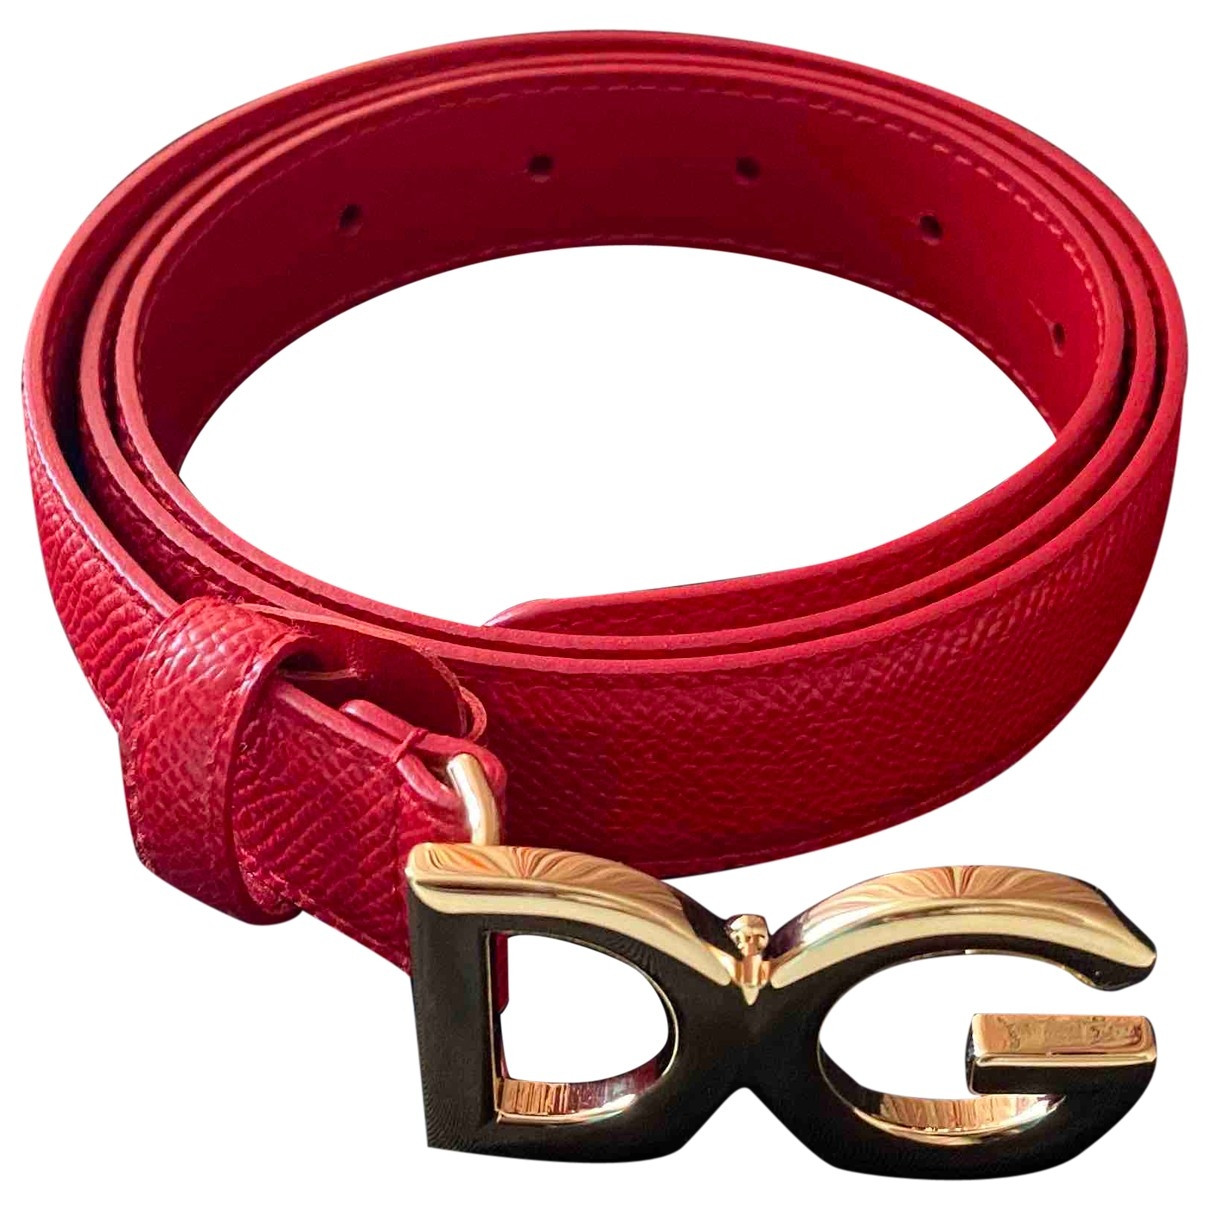 Dolce & Gabbana \N Red Leather belt for Women 95 cm